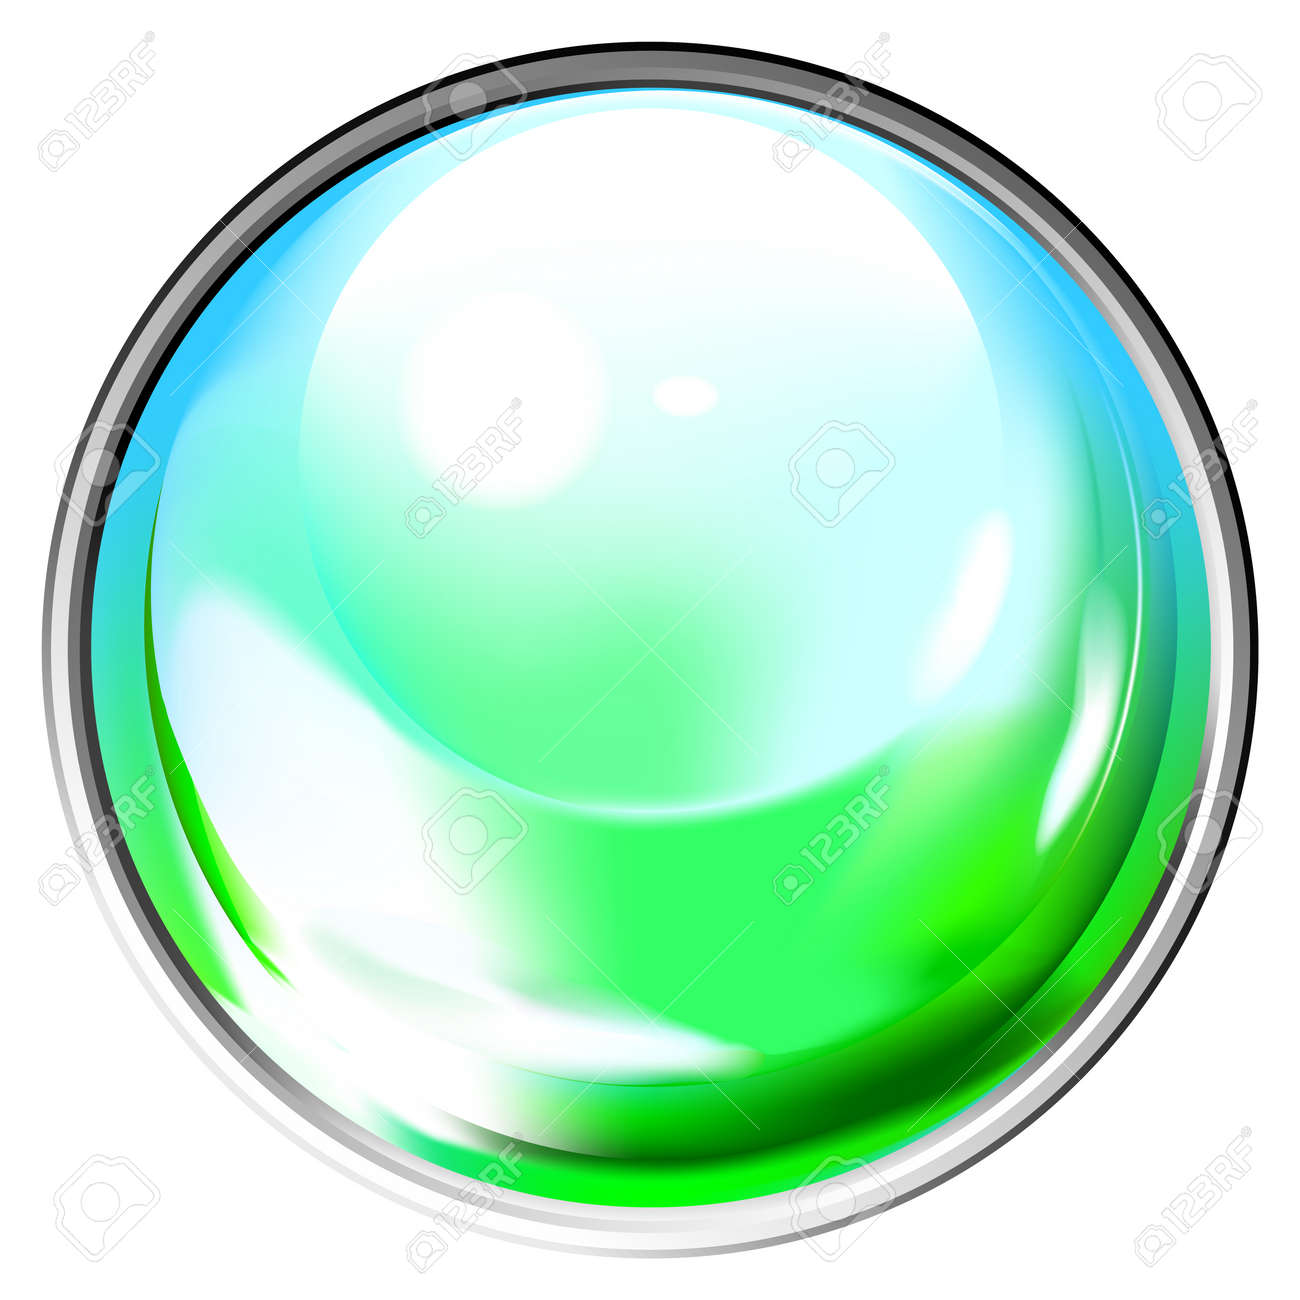 Colored transparent sphere. This image is a vector illustration and can be scaled to any size without loss of resolution. Stock Vector - 4475886